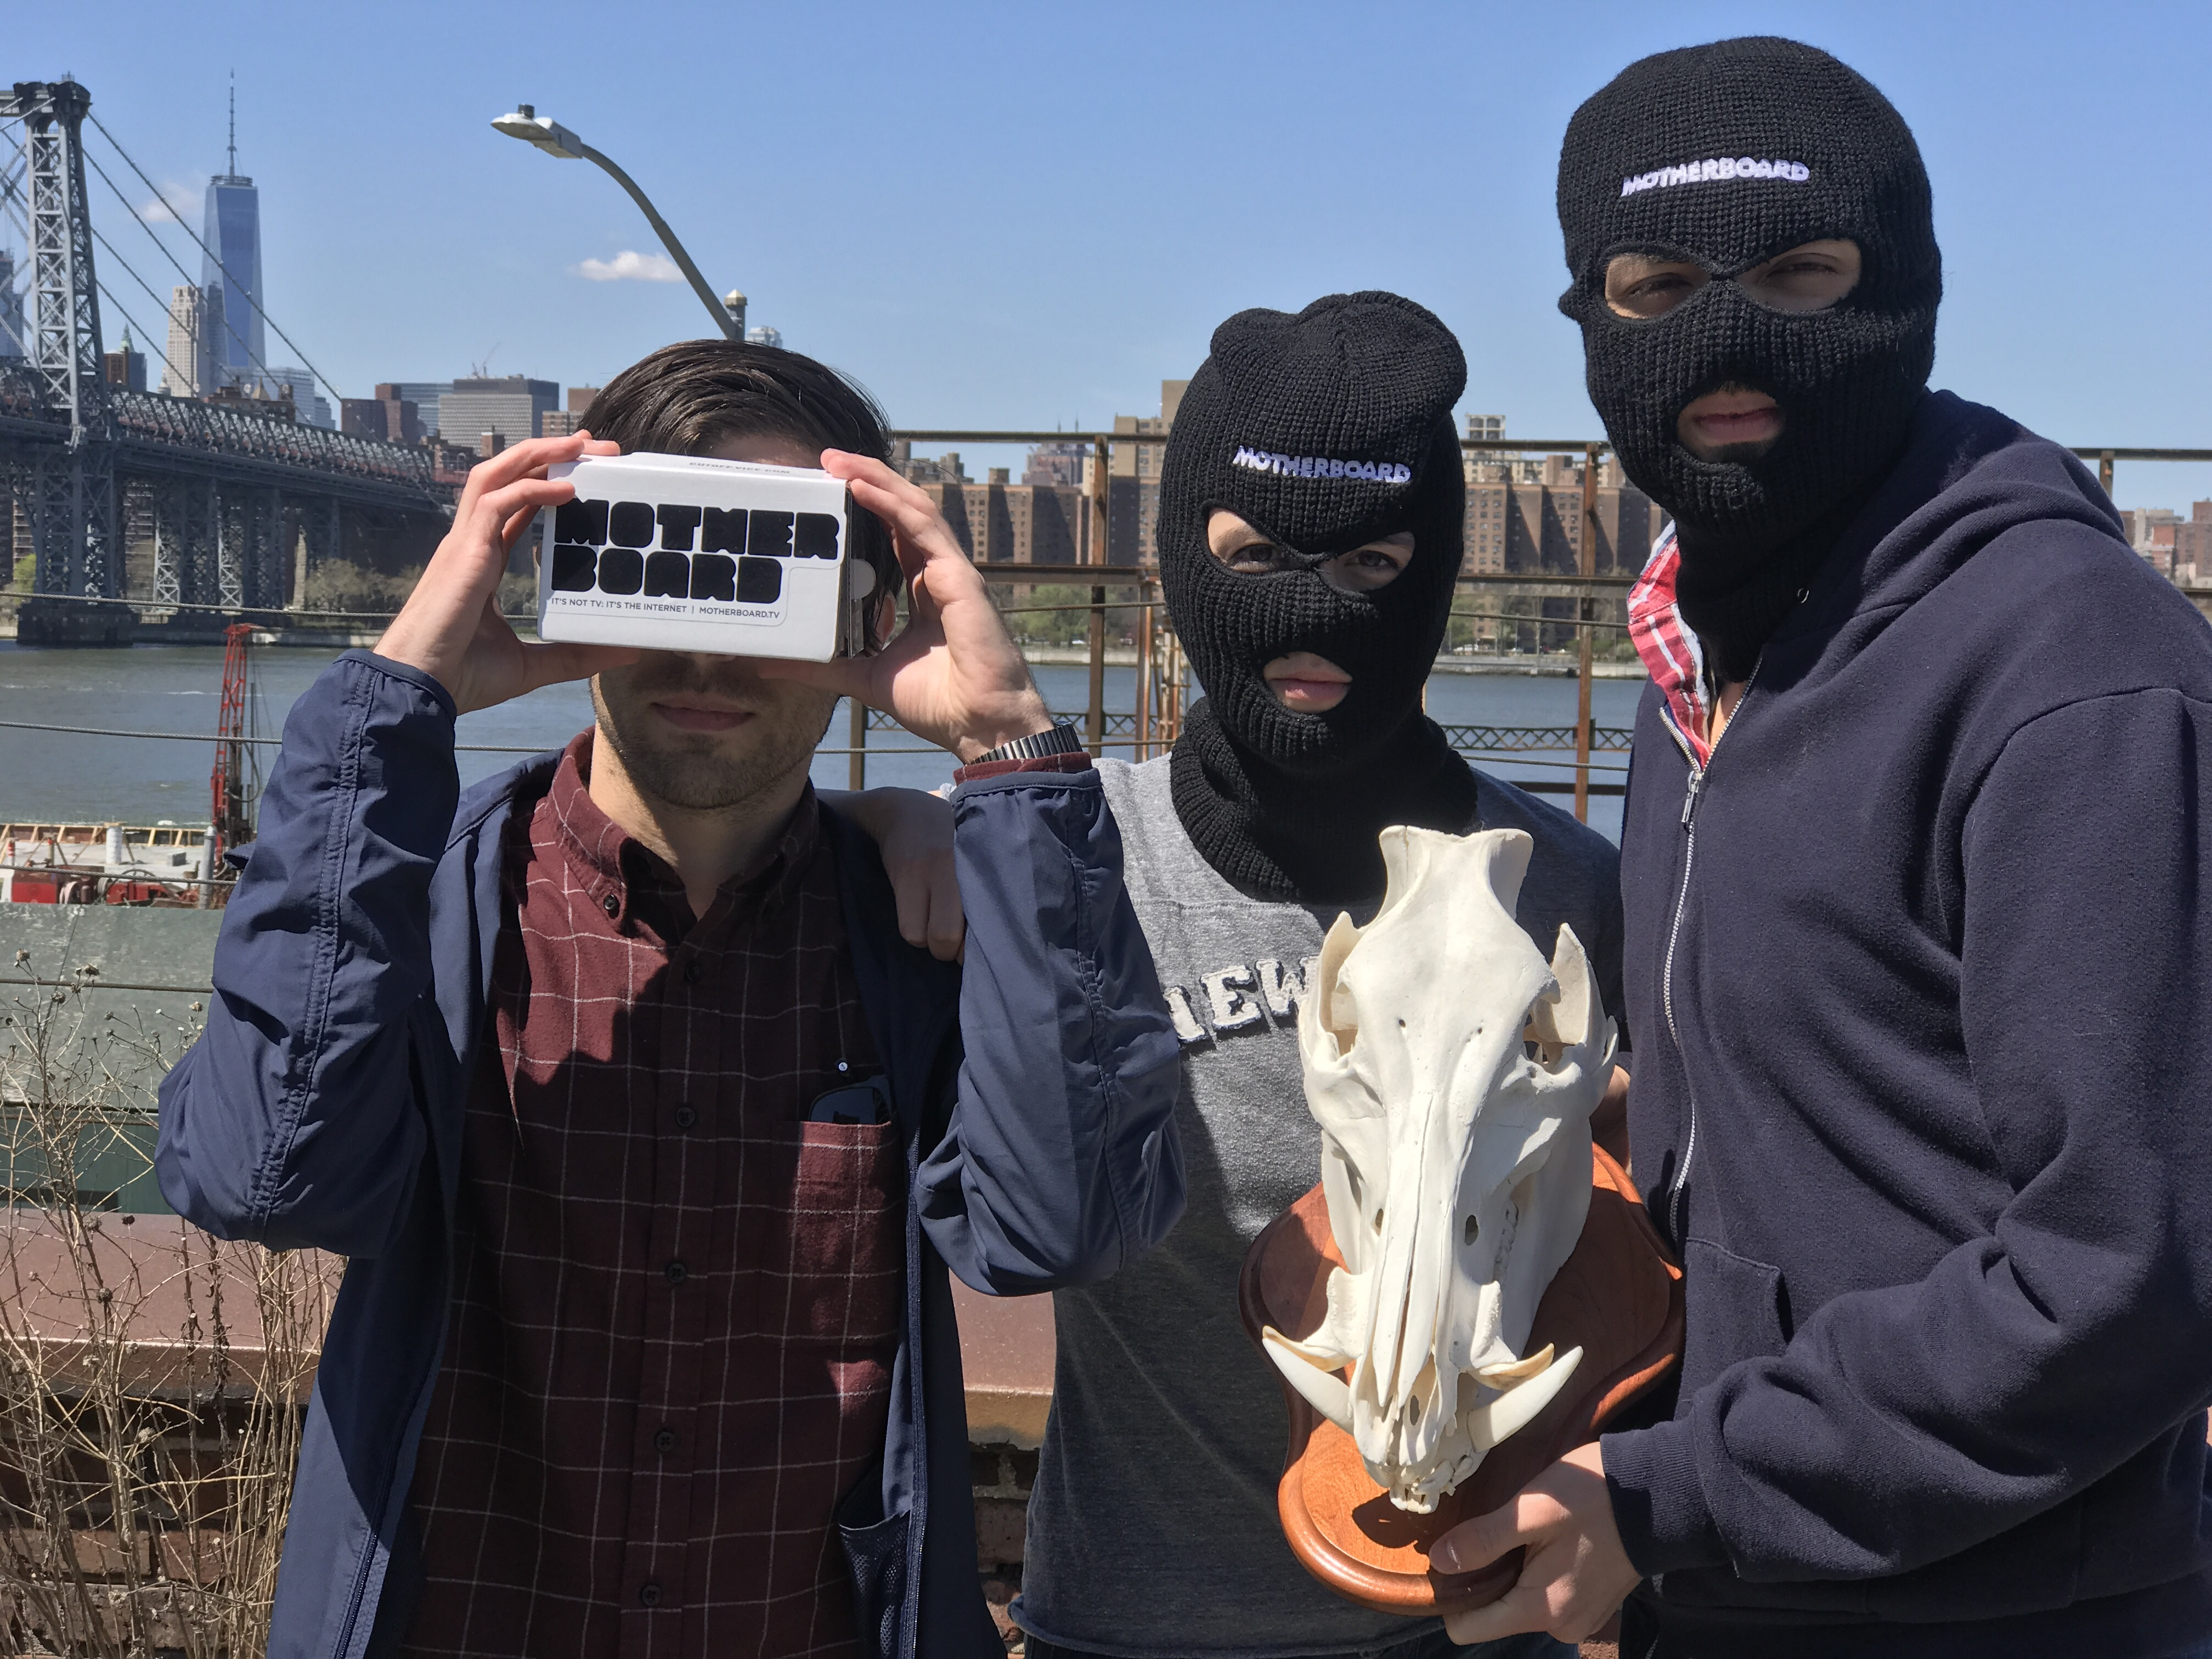 Vote For Motherboard in the Webbys and Win a Hacker Balaclava